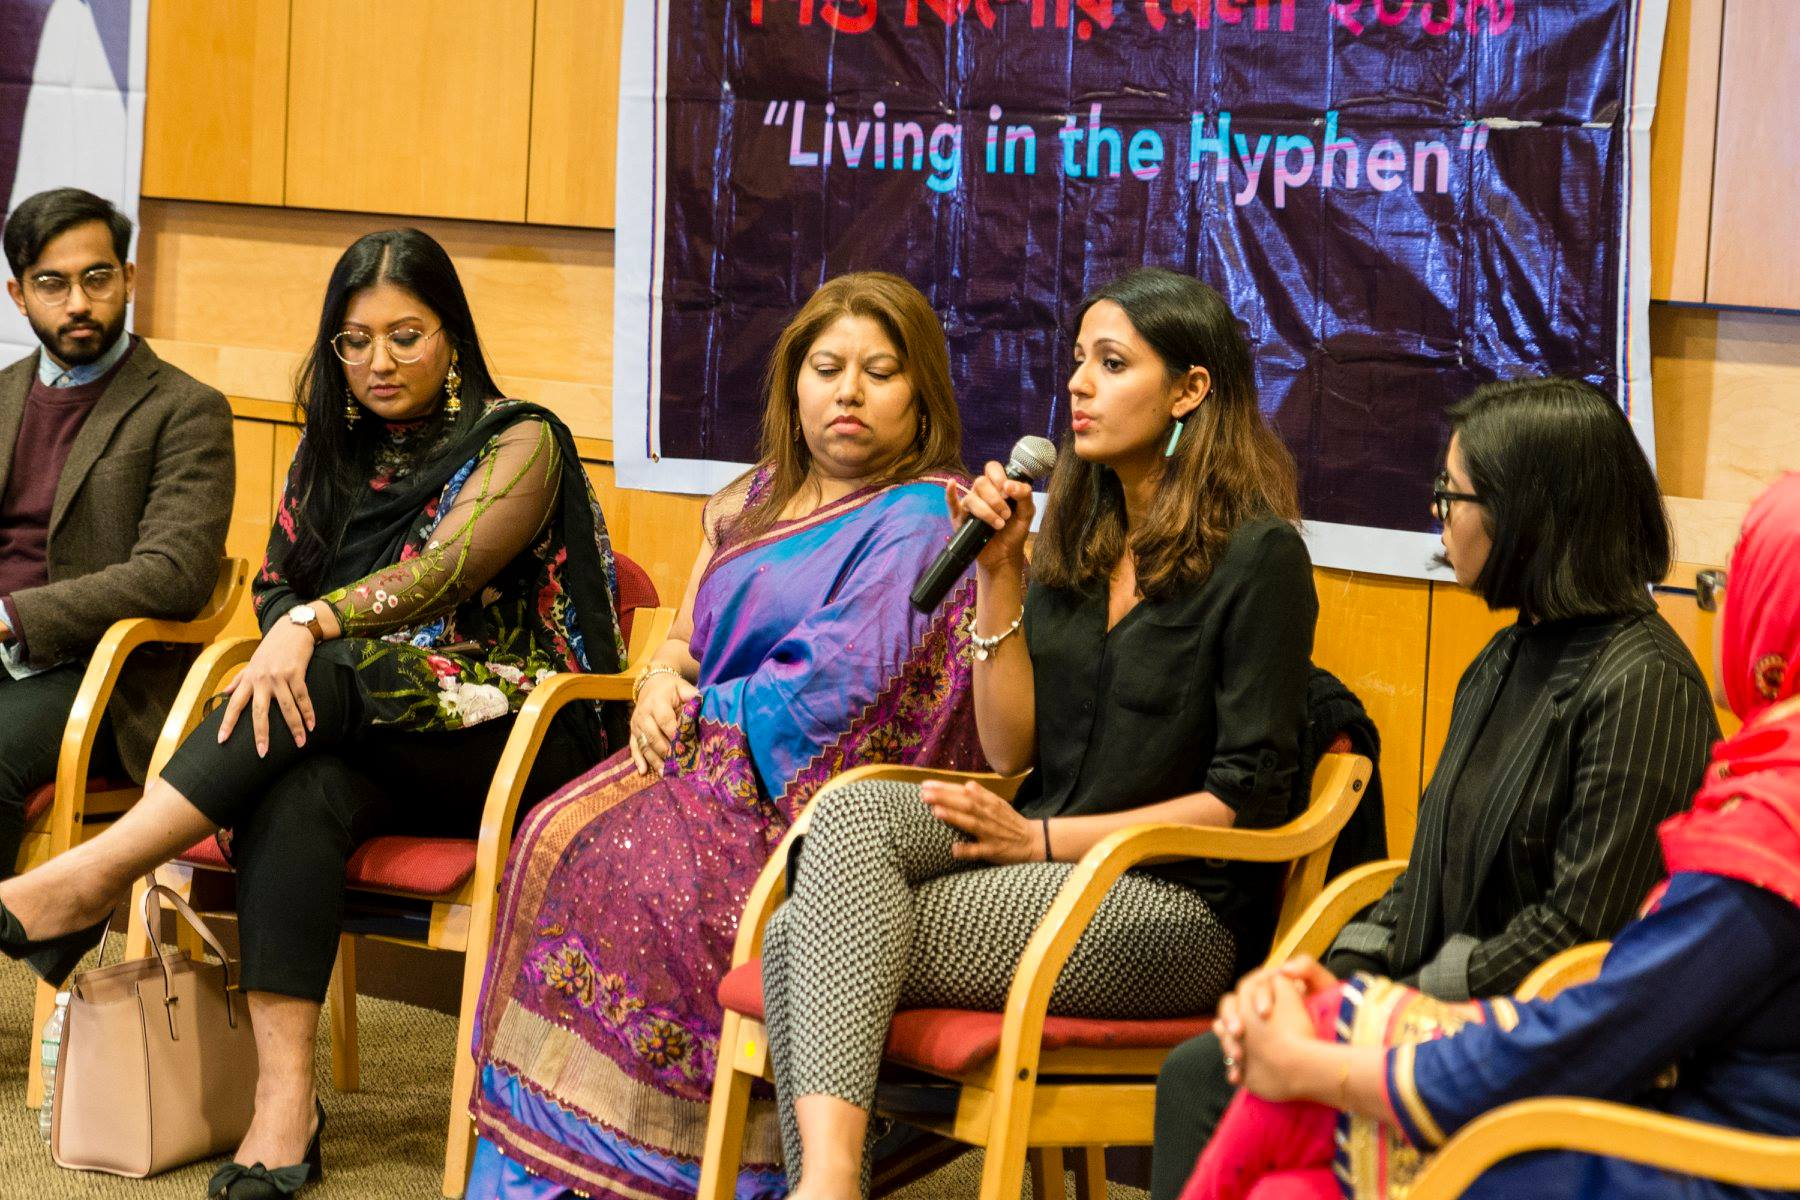 2020-ypf-panel-discussion-photo-by-wasi-ferdous-54432802